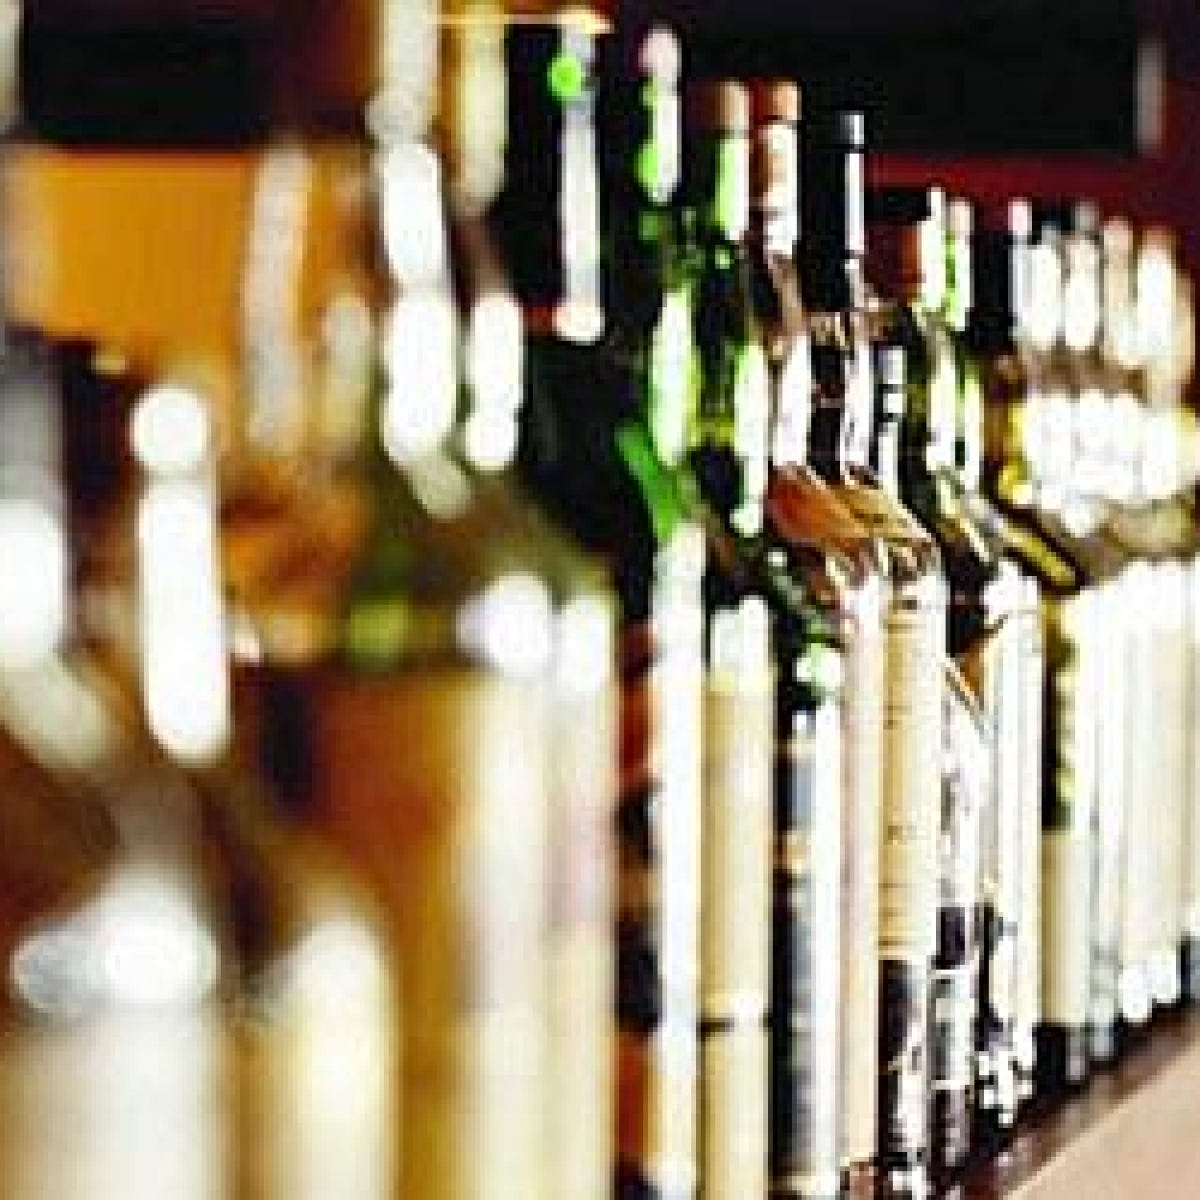 MP Govt, Indore and Bhopal district administration come face to face over liquor shops' re-opening